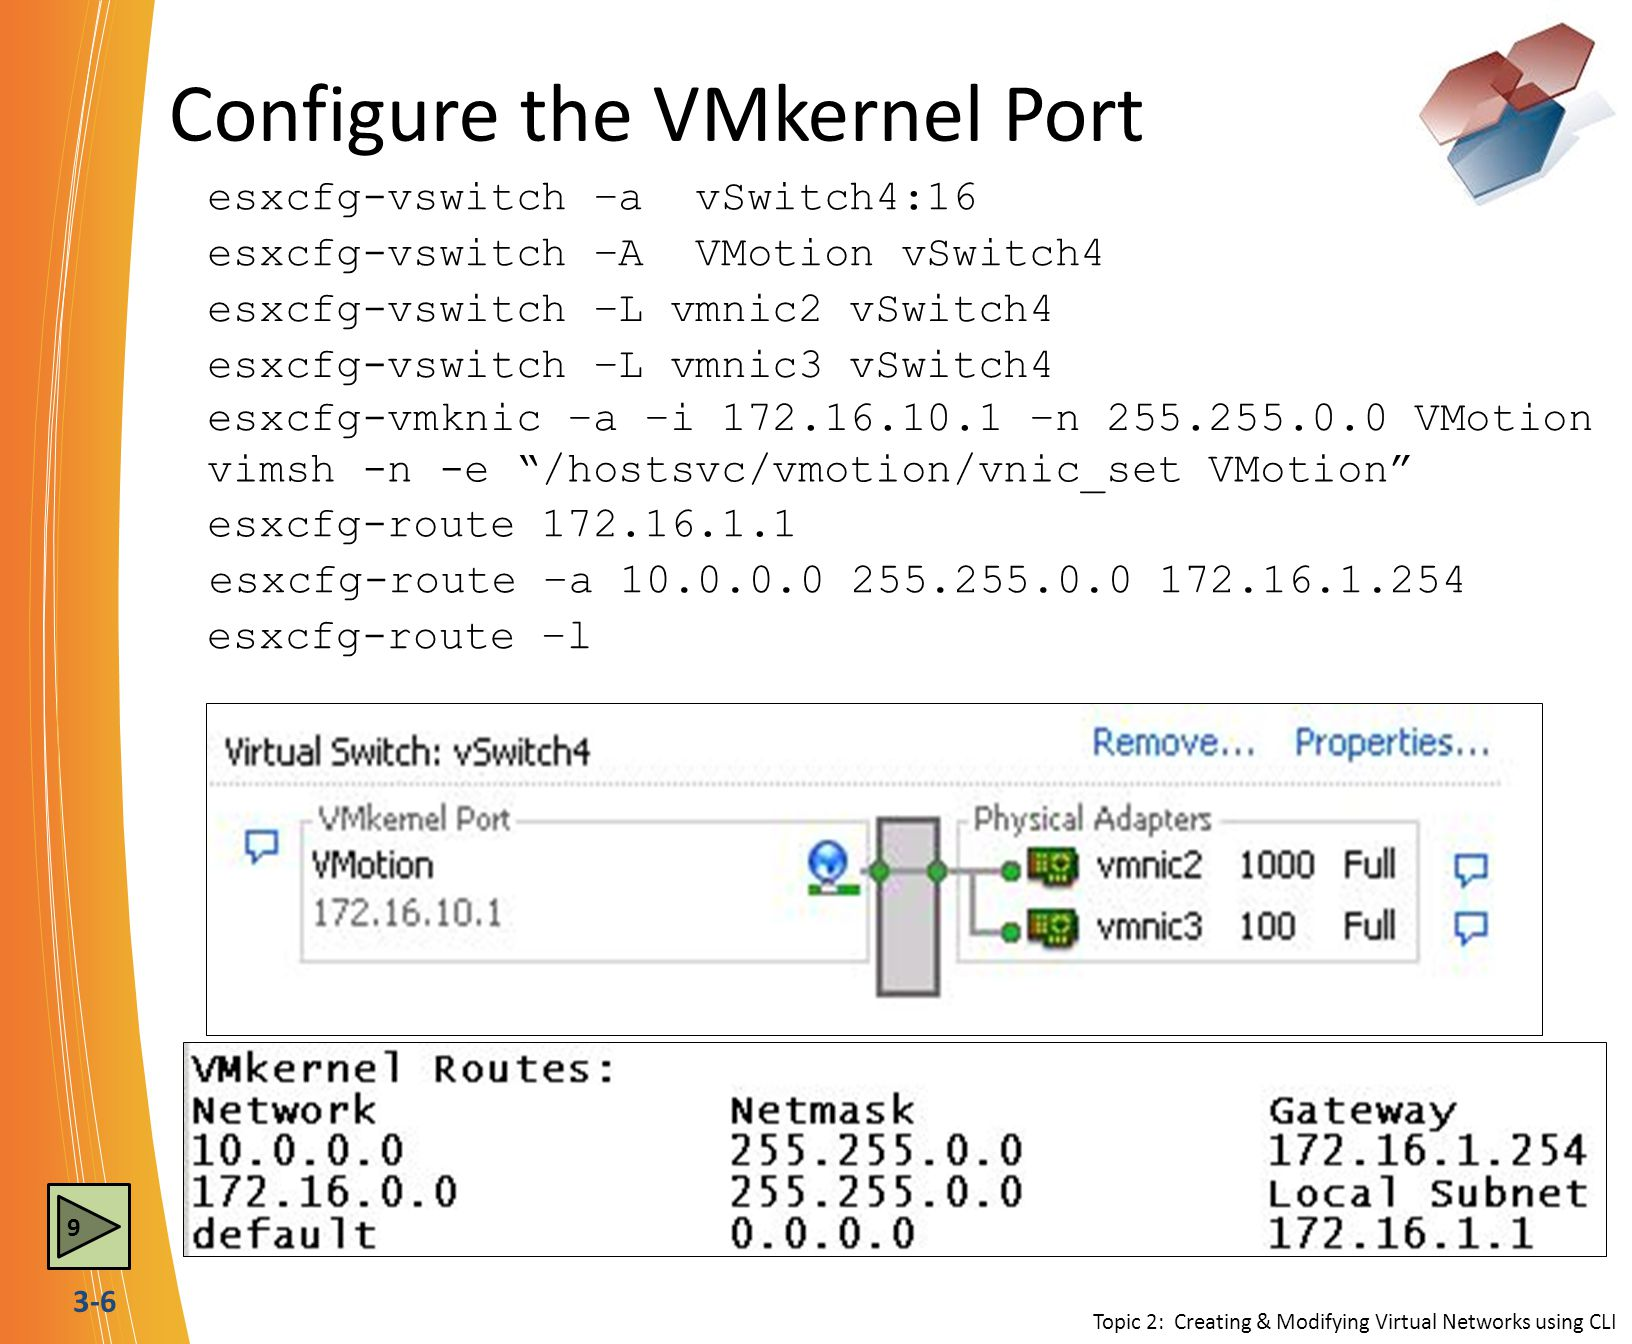 3-6 Configure the VMkernel Port esxcfg-vswitch –a vSwitch4:16 esxcfg-vswitch –A VMotion vSwitch4 esxcfg-vswitch –L vmnic3 vSwitch4 esxcfg-route 172.16.1.1 esxcfg-vswitch –L vmnic2 vSwitch4 esxcfg-vmknic –a –i 172.16.10.1 –n 255.255.0.0 VMotion esxcfg-route –a 10.0.0.0 255.255.0.0 172.16.1.254 esxcfg-route –l vimsh -n -e /hostsvc/vmotion/vnic_set VMotion Topic 2: Creating & Modifying Virtual Networks using CLI 9